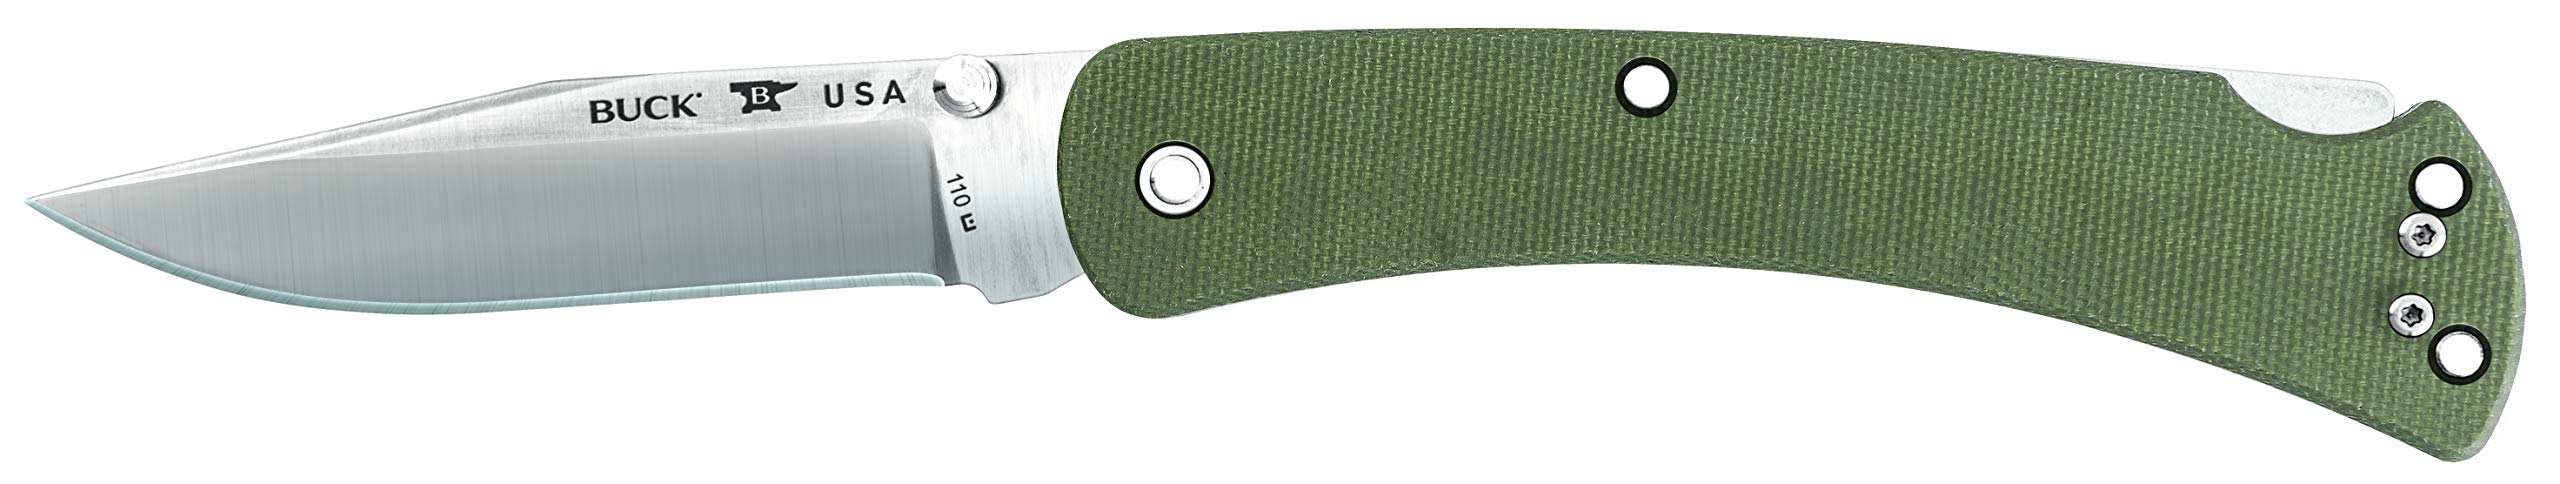 Buck Knives 110 Slim Pro Lockback Pocket Knife with Thumb Studs and Removable/Reversible Deep Carry Pocket Clip, 3-3/4'' S30V Blade by Buck Knives (Image #3)